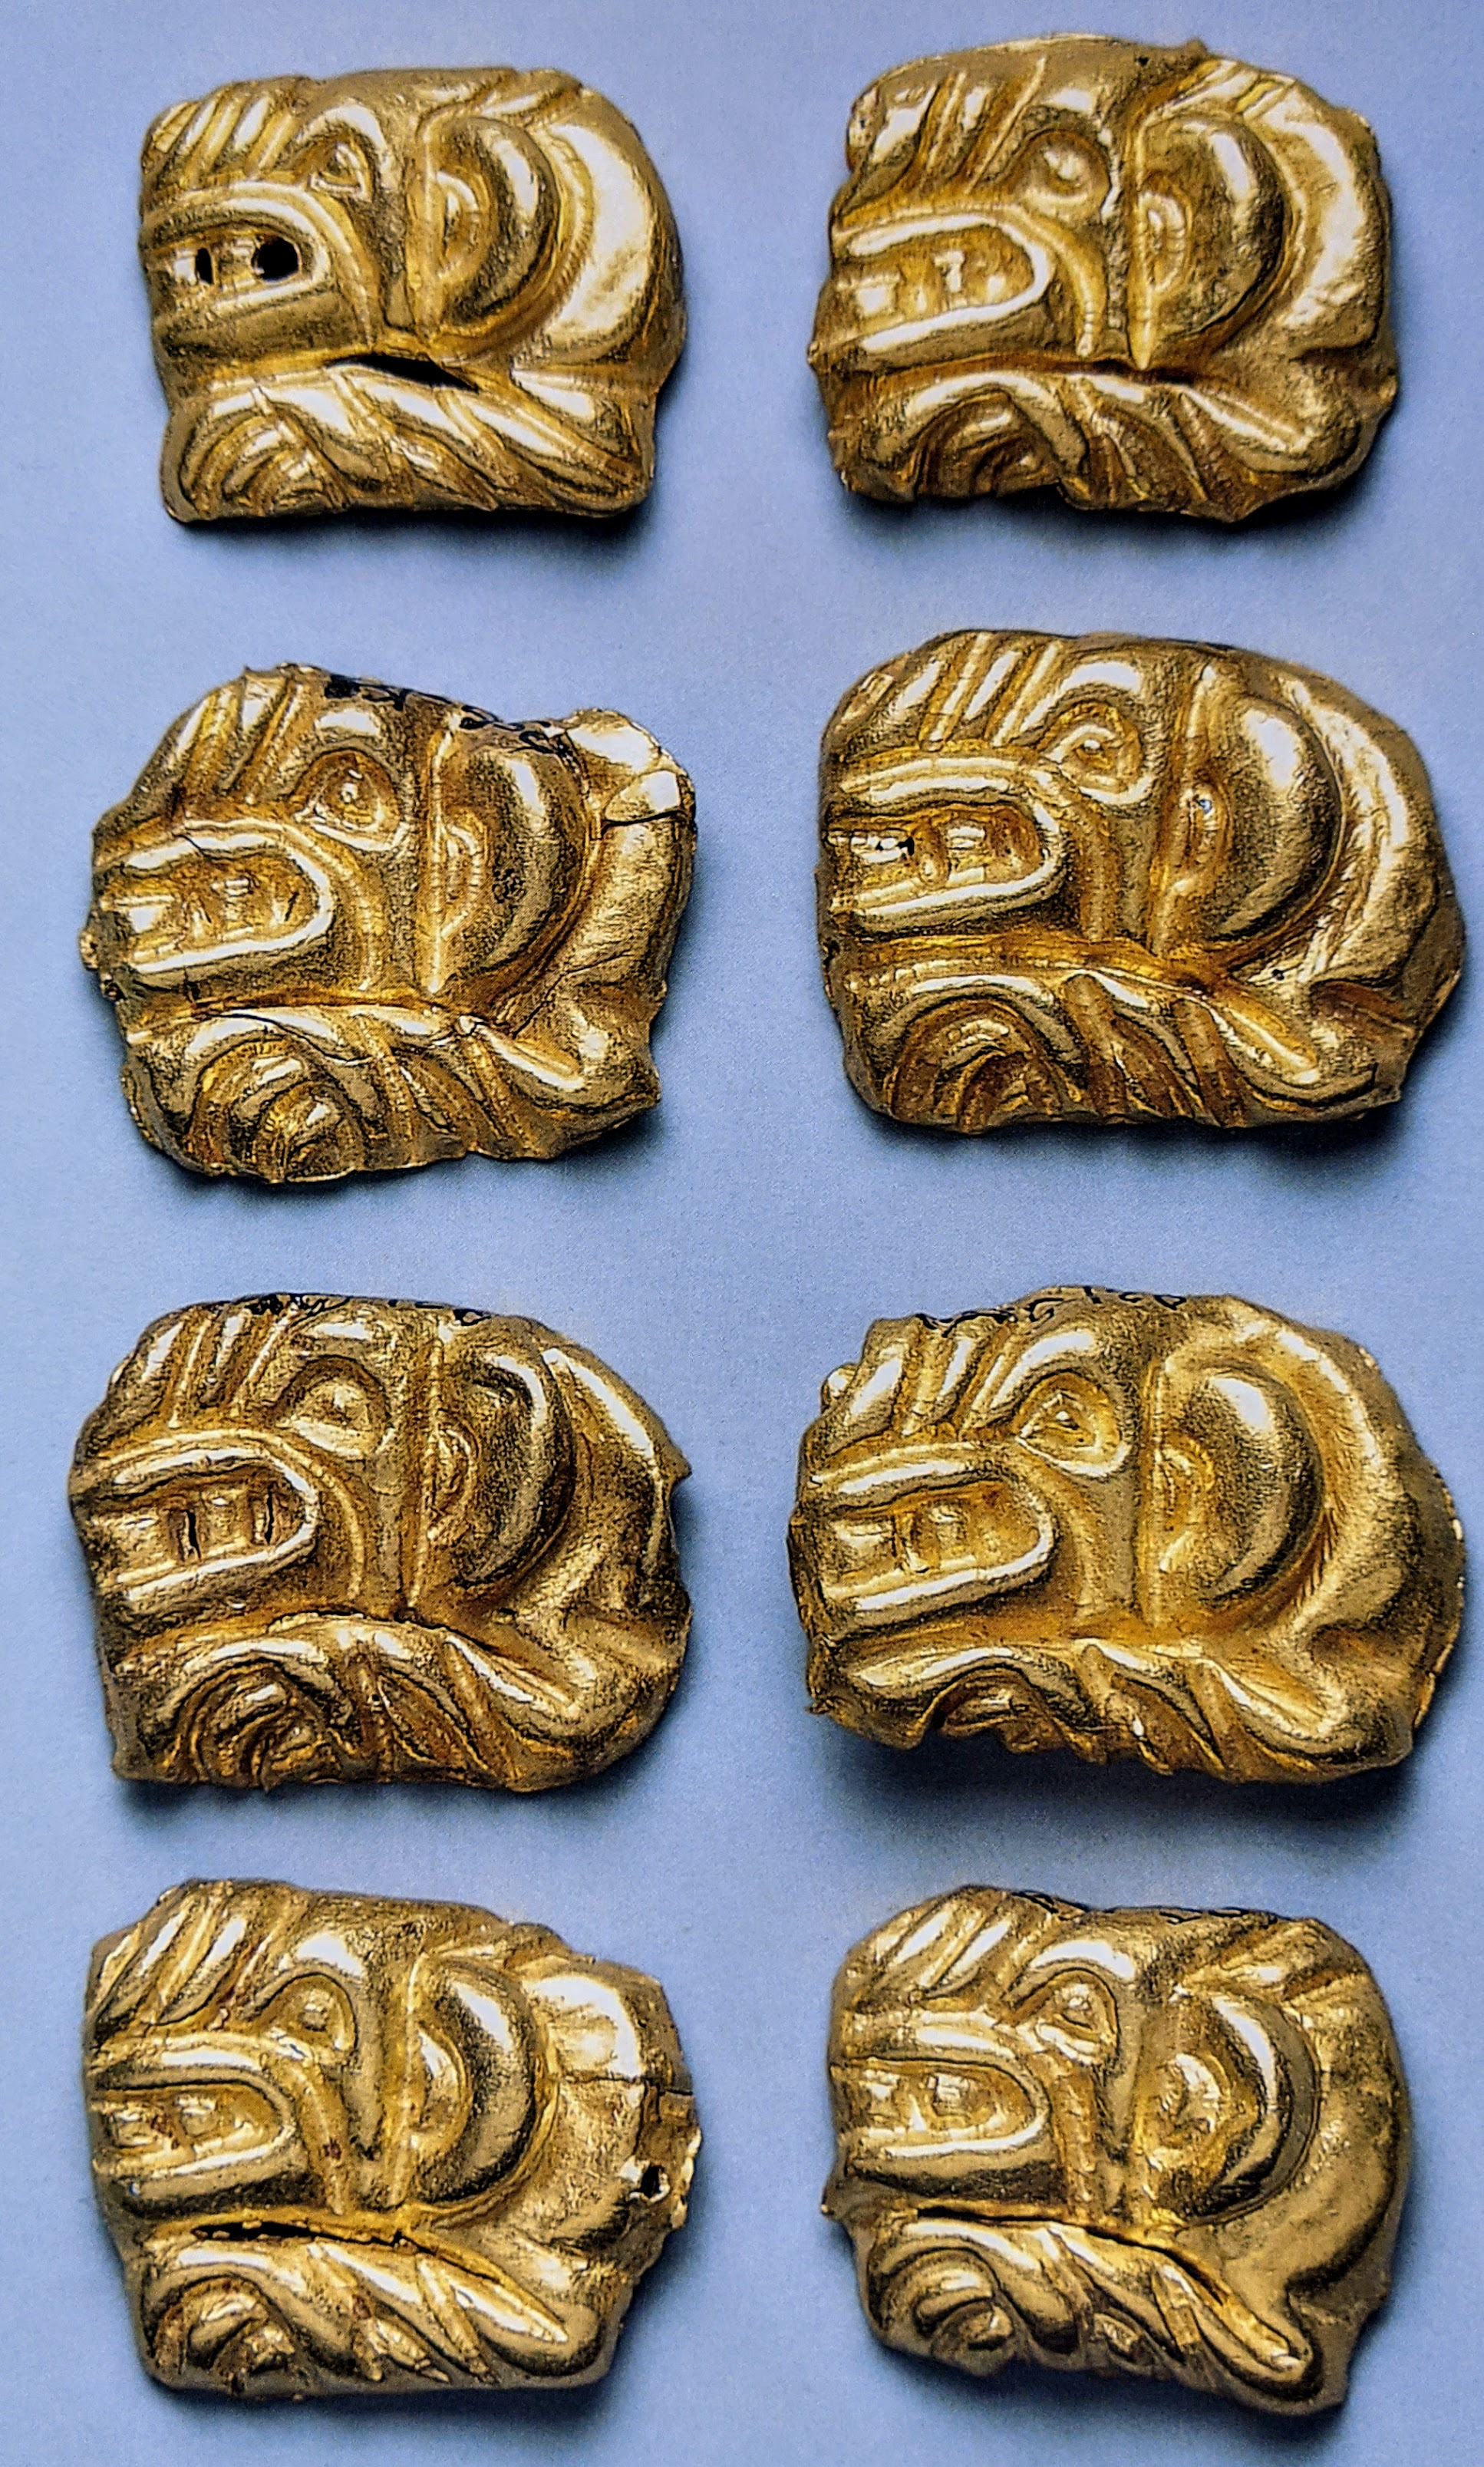 Tiger shaped gold plaques